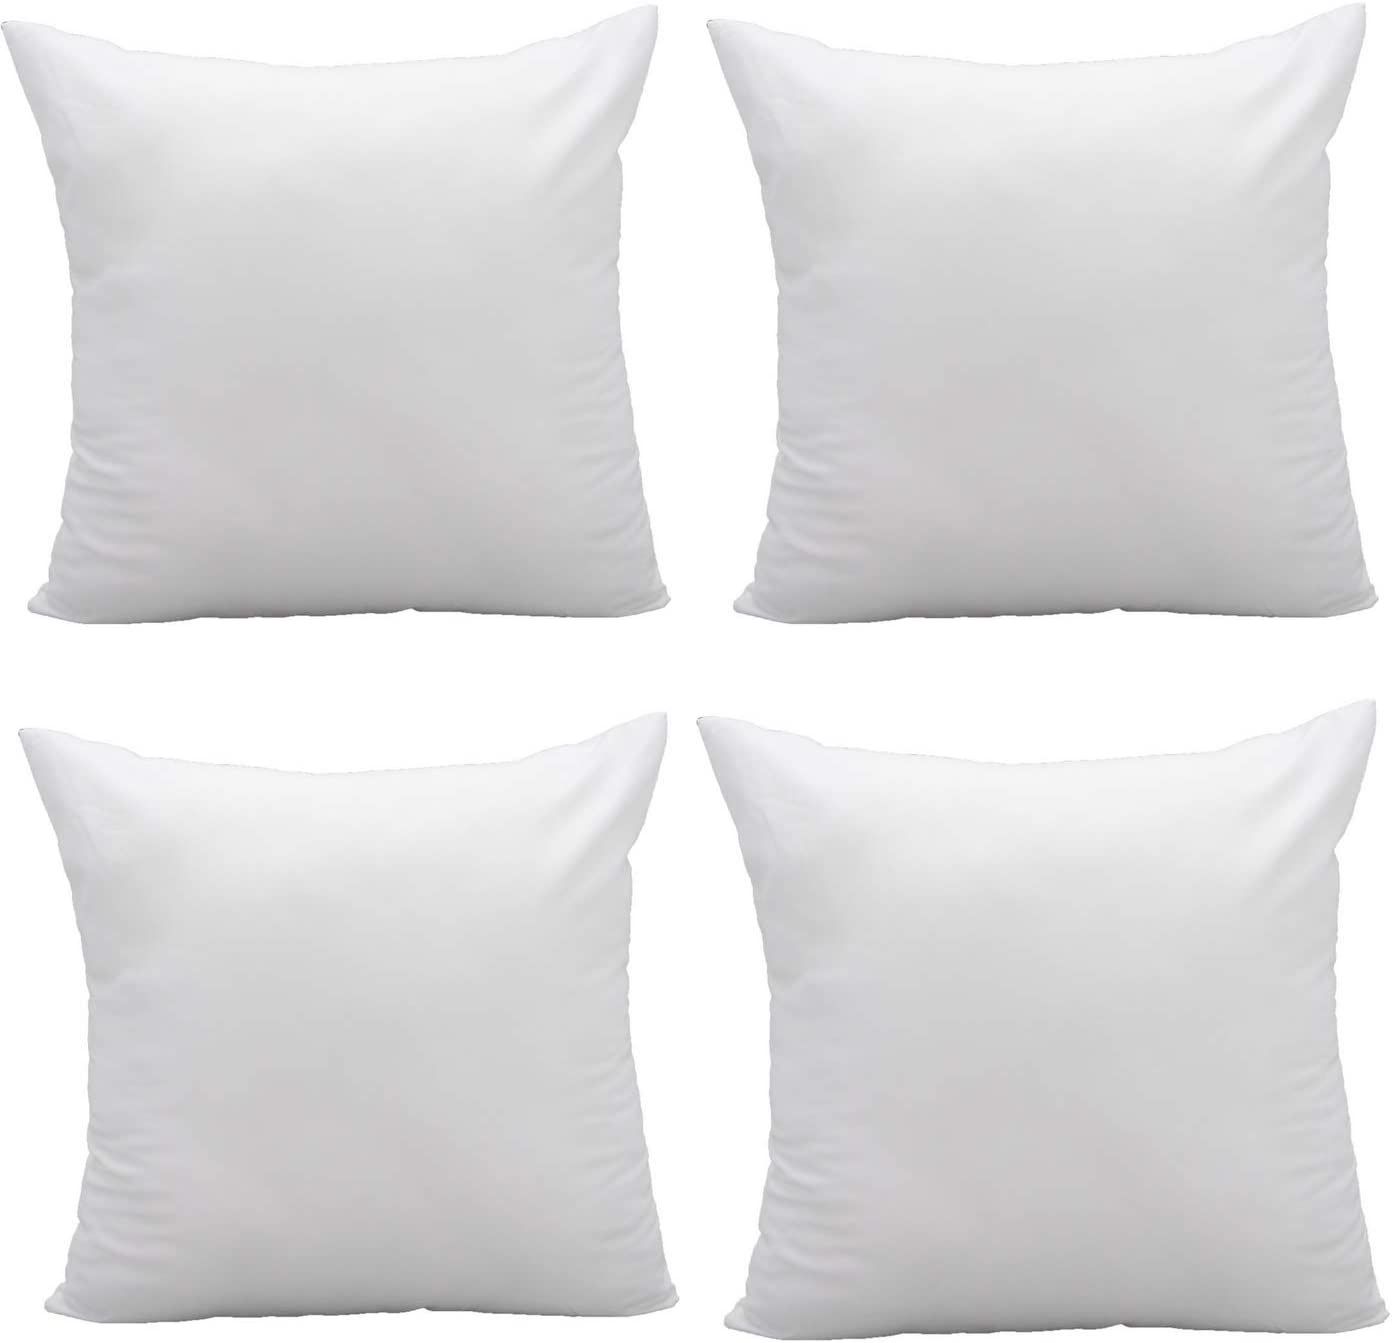 Pal Fabric Pack of 4 Square Pillow Insert for Sham or Decorative Pillow for 18x18 Cover 20x20 Nonwoven- Economy Pack